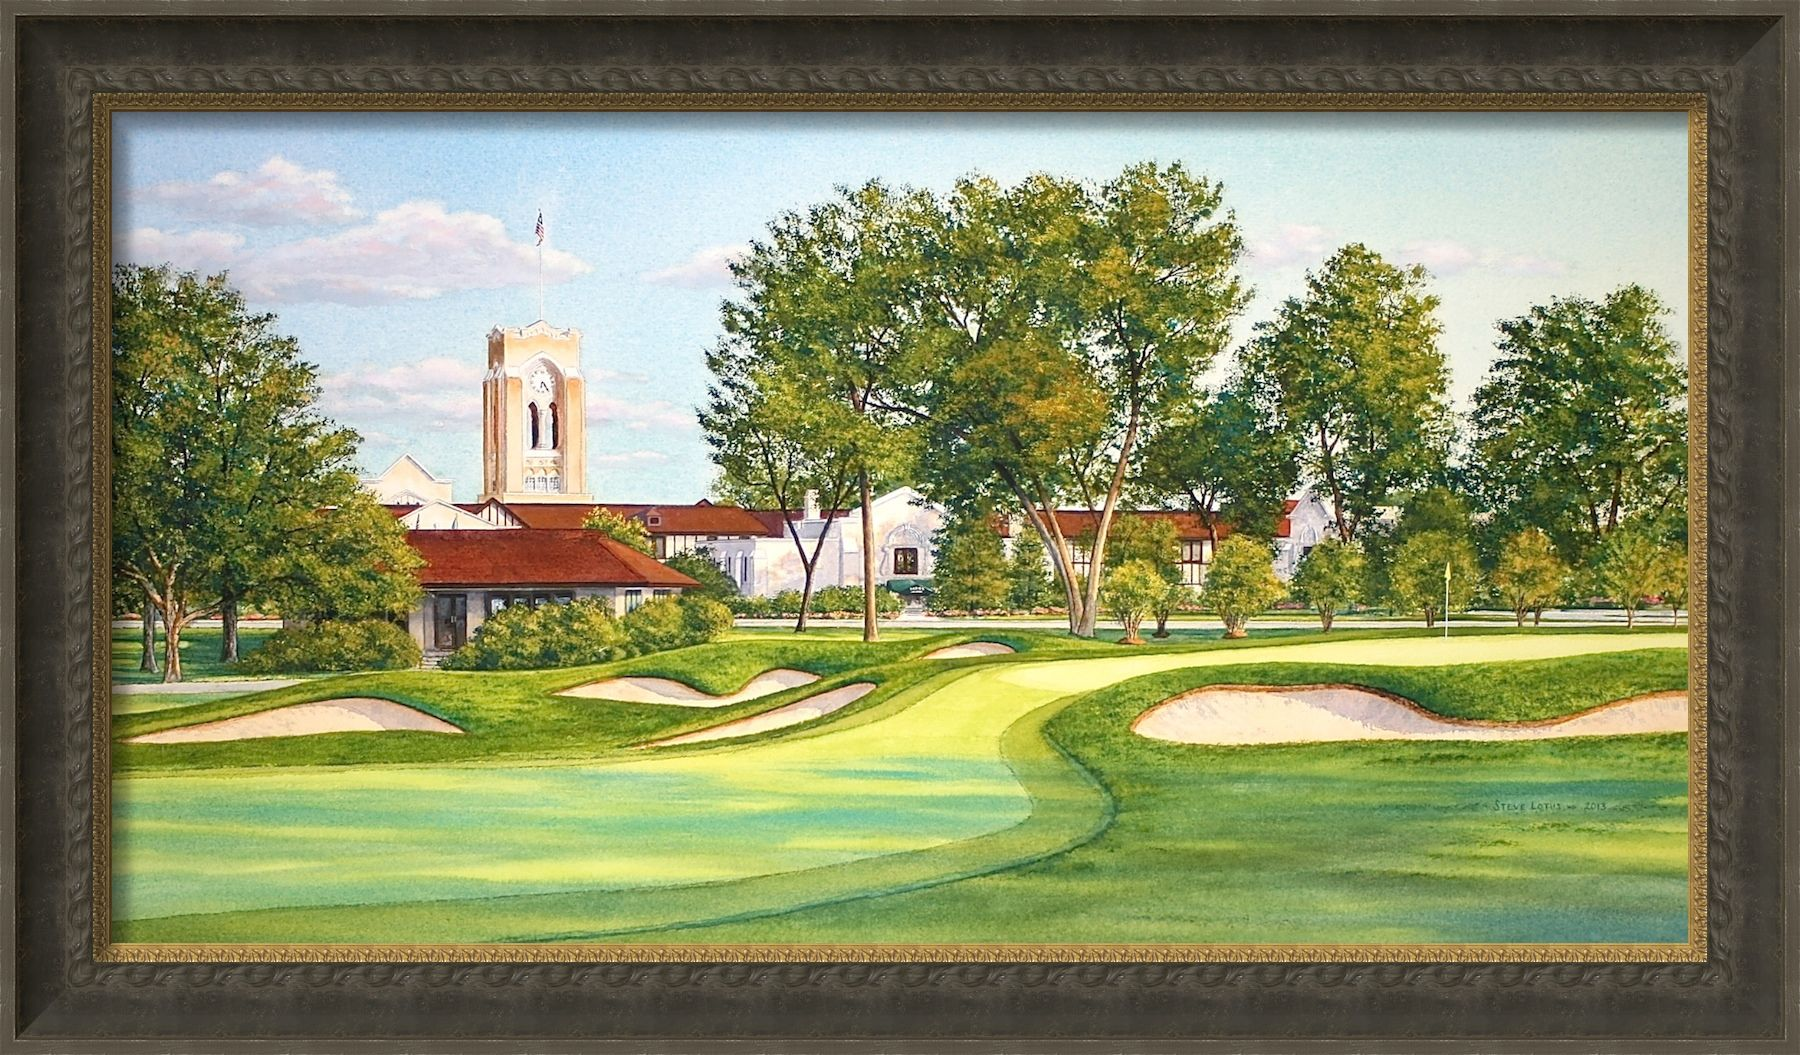 olympia fields senior personals Olympia fields country club is, and has been since its founding, a private club membership is by invitation only access to olympia's golf courses, clubhouse, tennis courts, aquatic center & all other facilities are restricted to members & their guests.